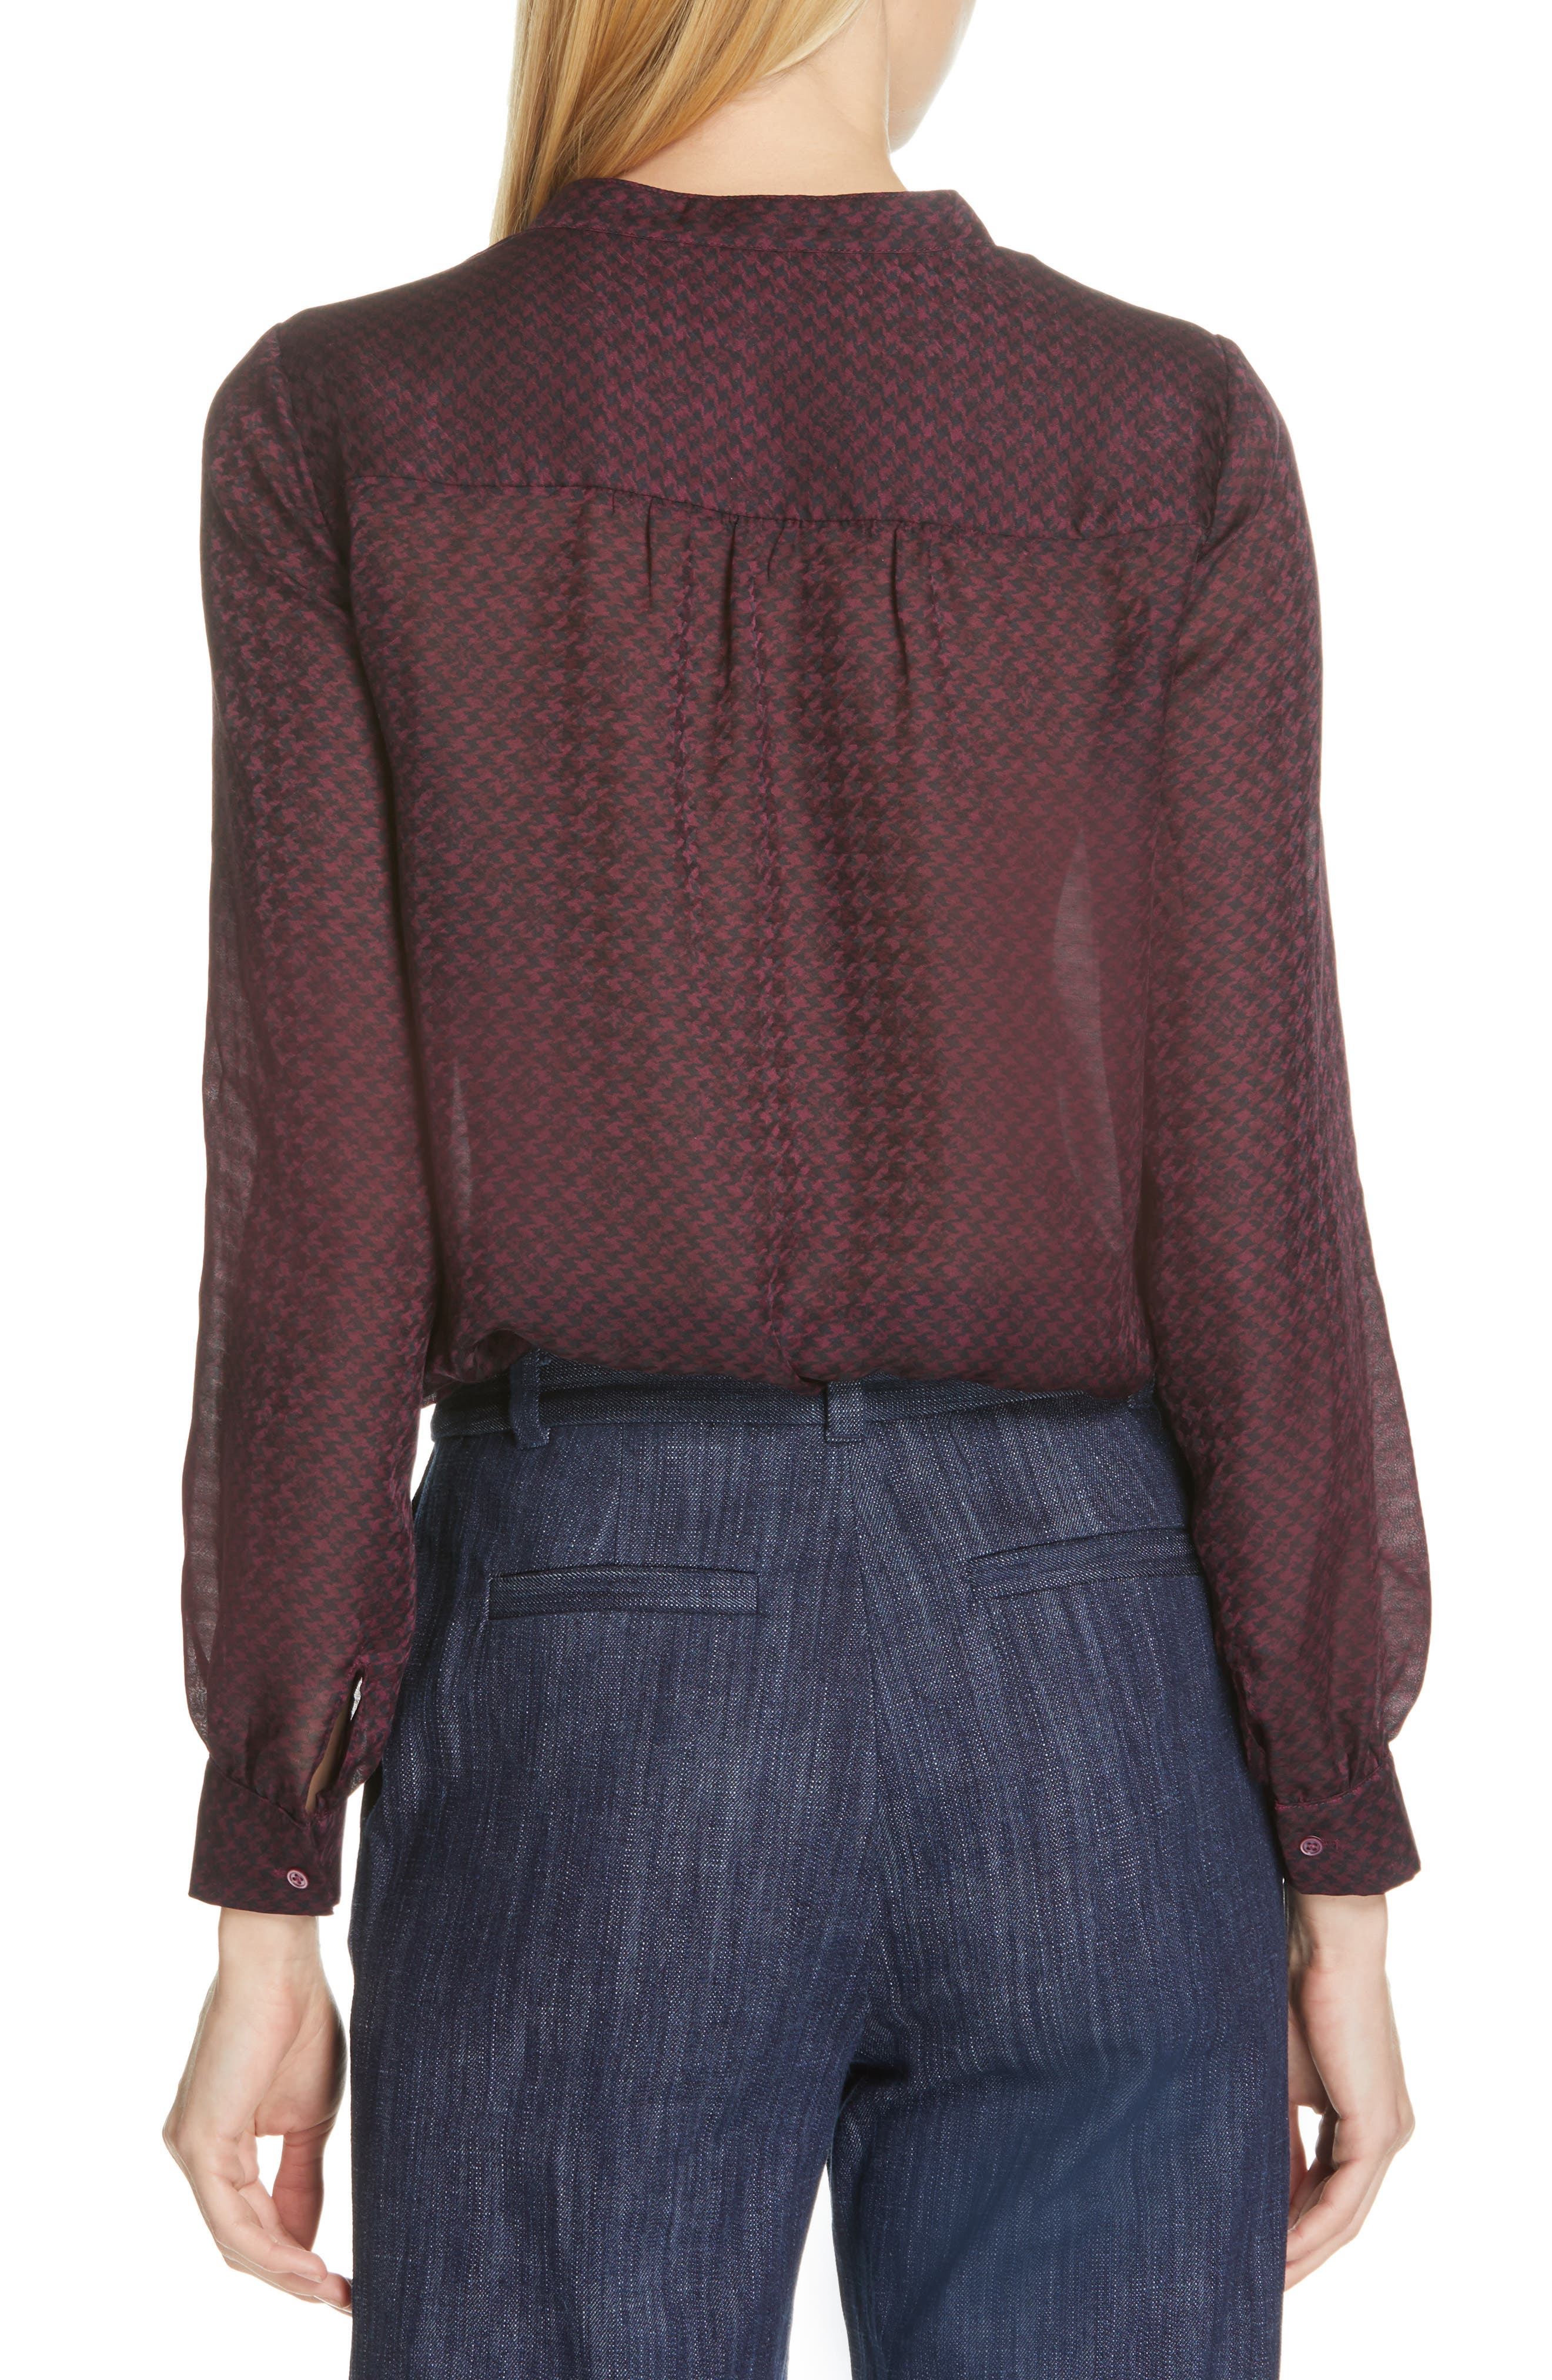 JOIE, Mintee Houndstooth Check Blouse, Alternate thumbnail 2, color, 501